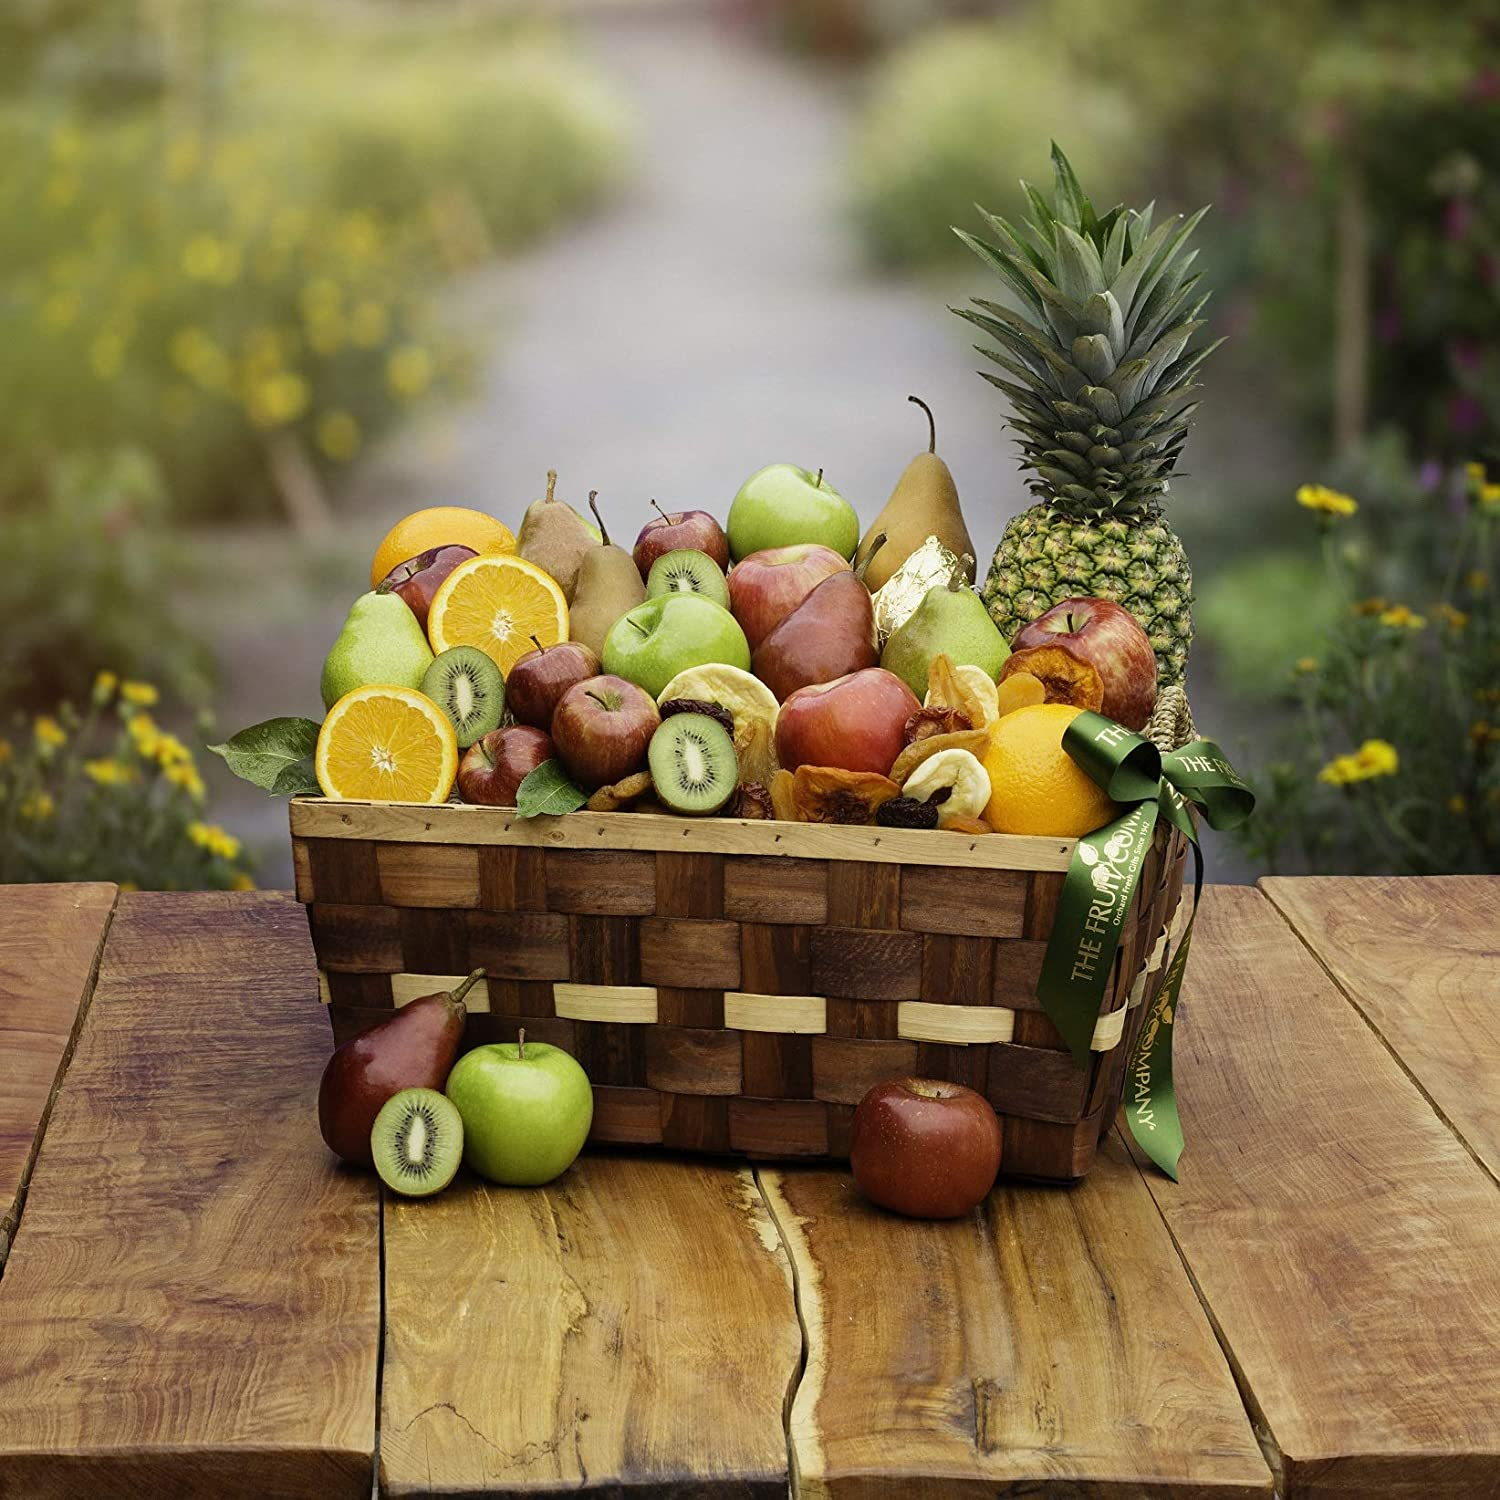 The Fruit Company Organic Festival of Fruit Basket- 25 pieces of USDA Certified Premium Fresh Apples, Pears, Oranges,and Pineapple with a Dried Fruit Medley